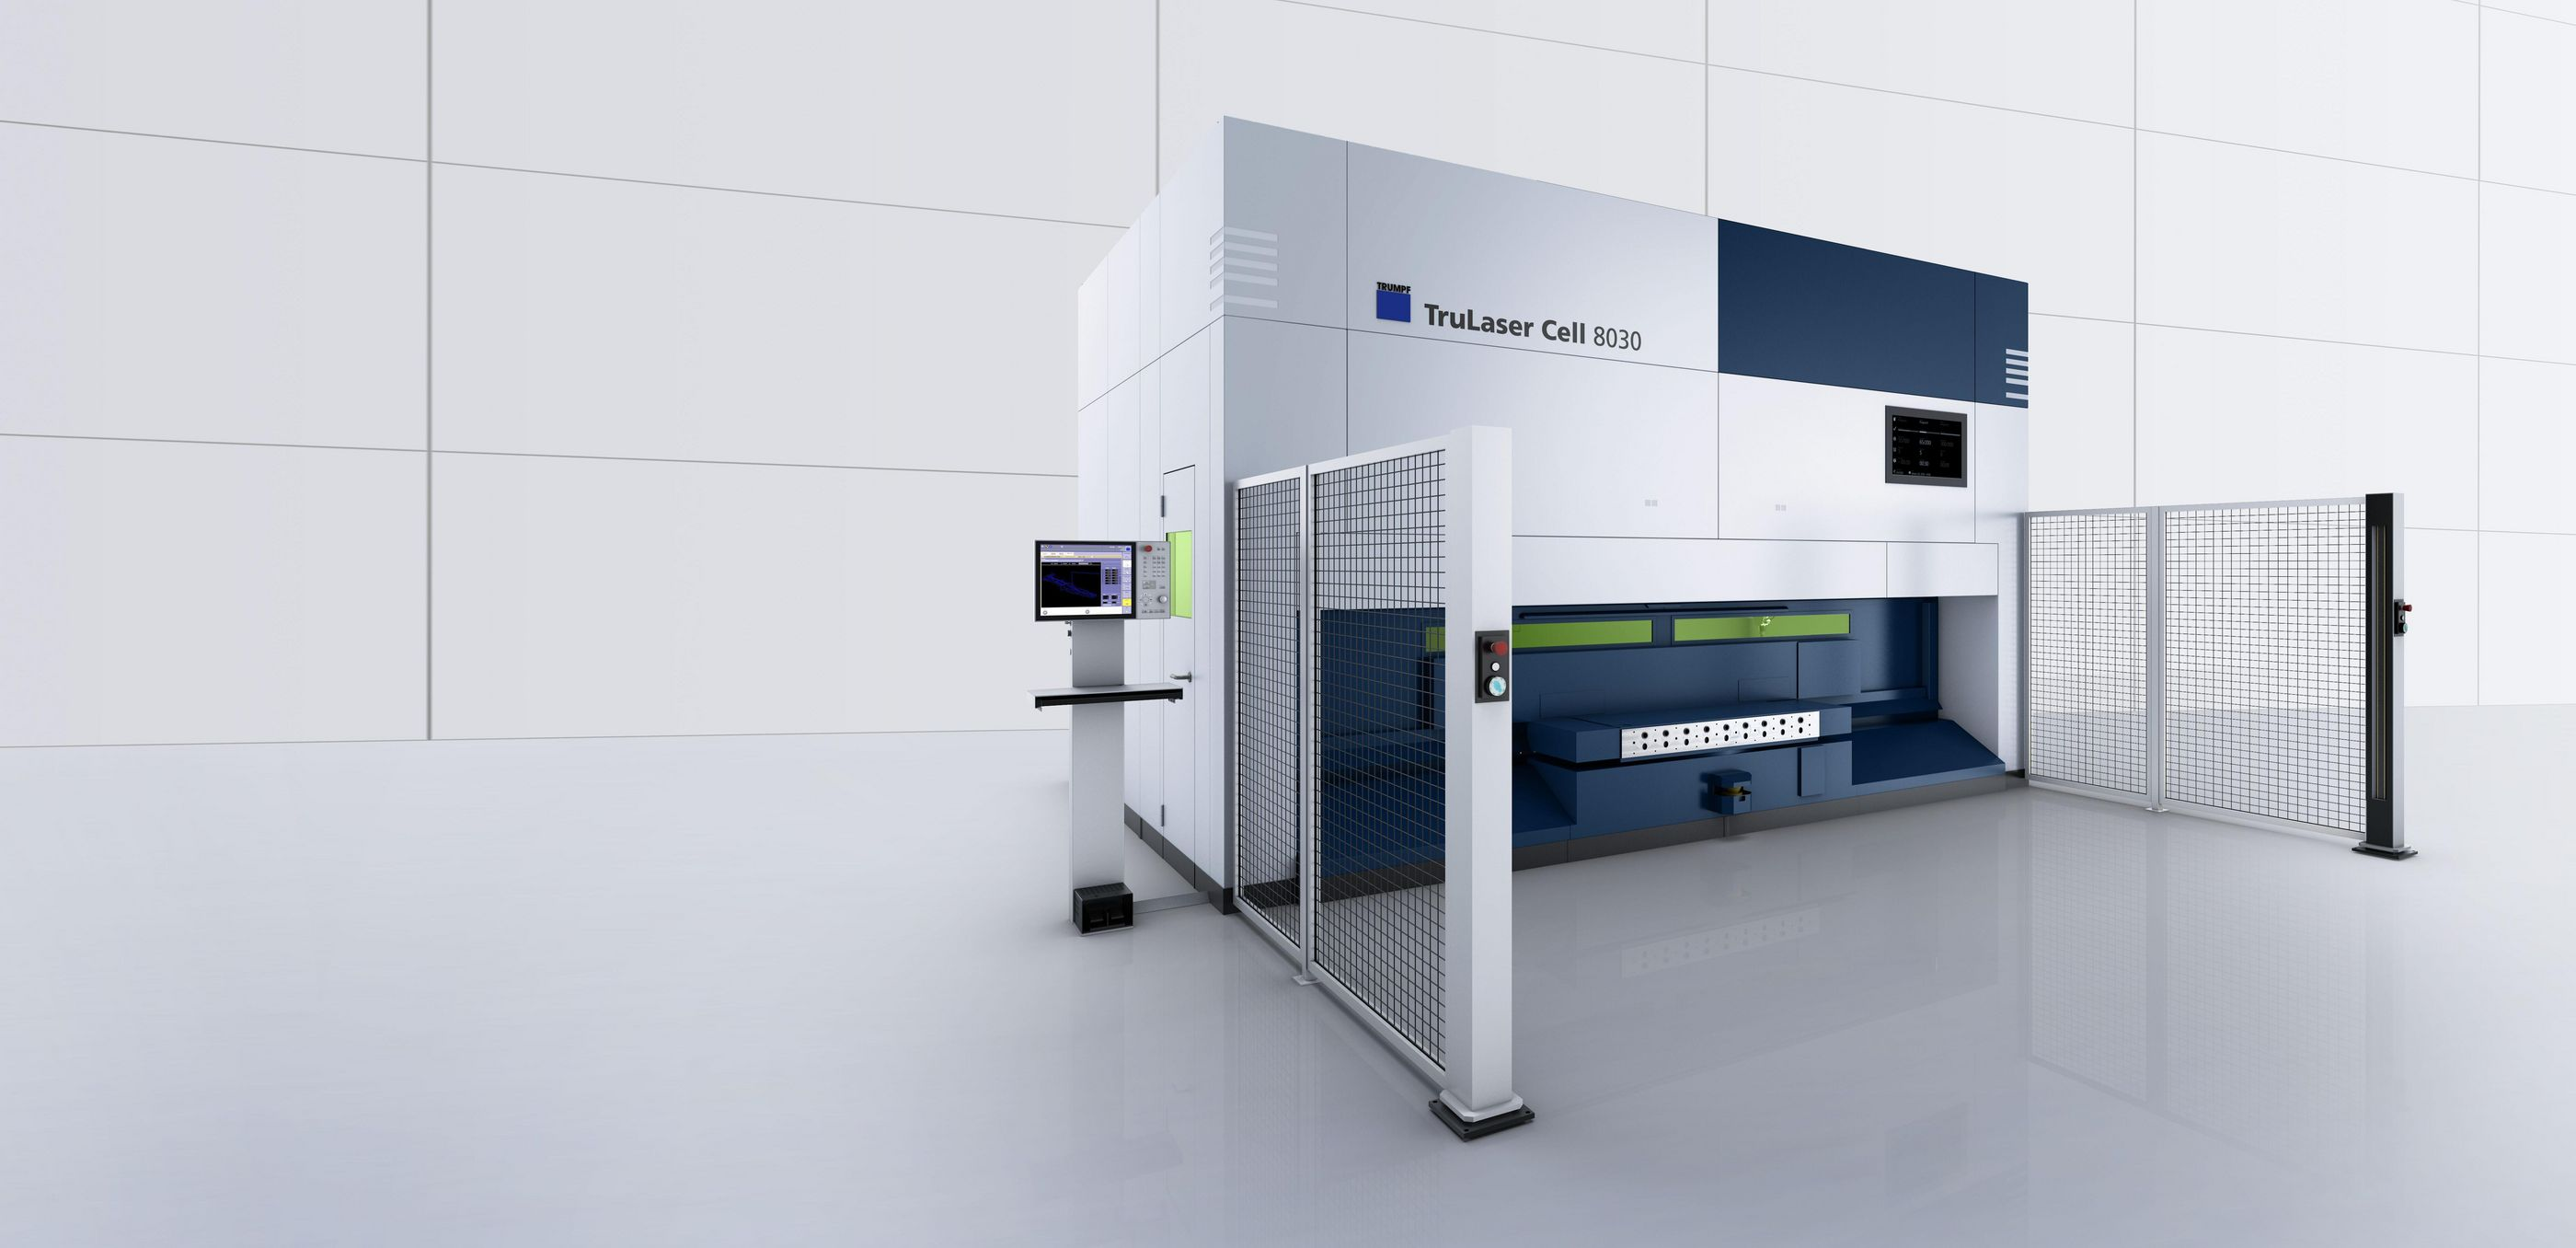 TruLaser Cell 8030 3D laser cutting machine as an installation version